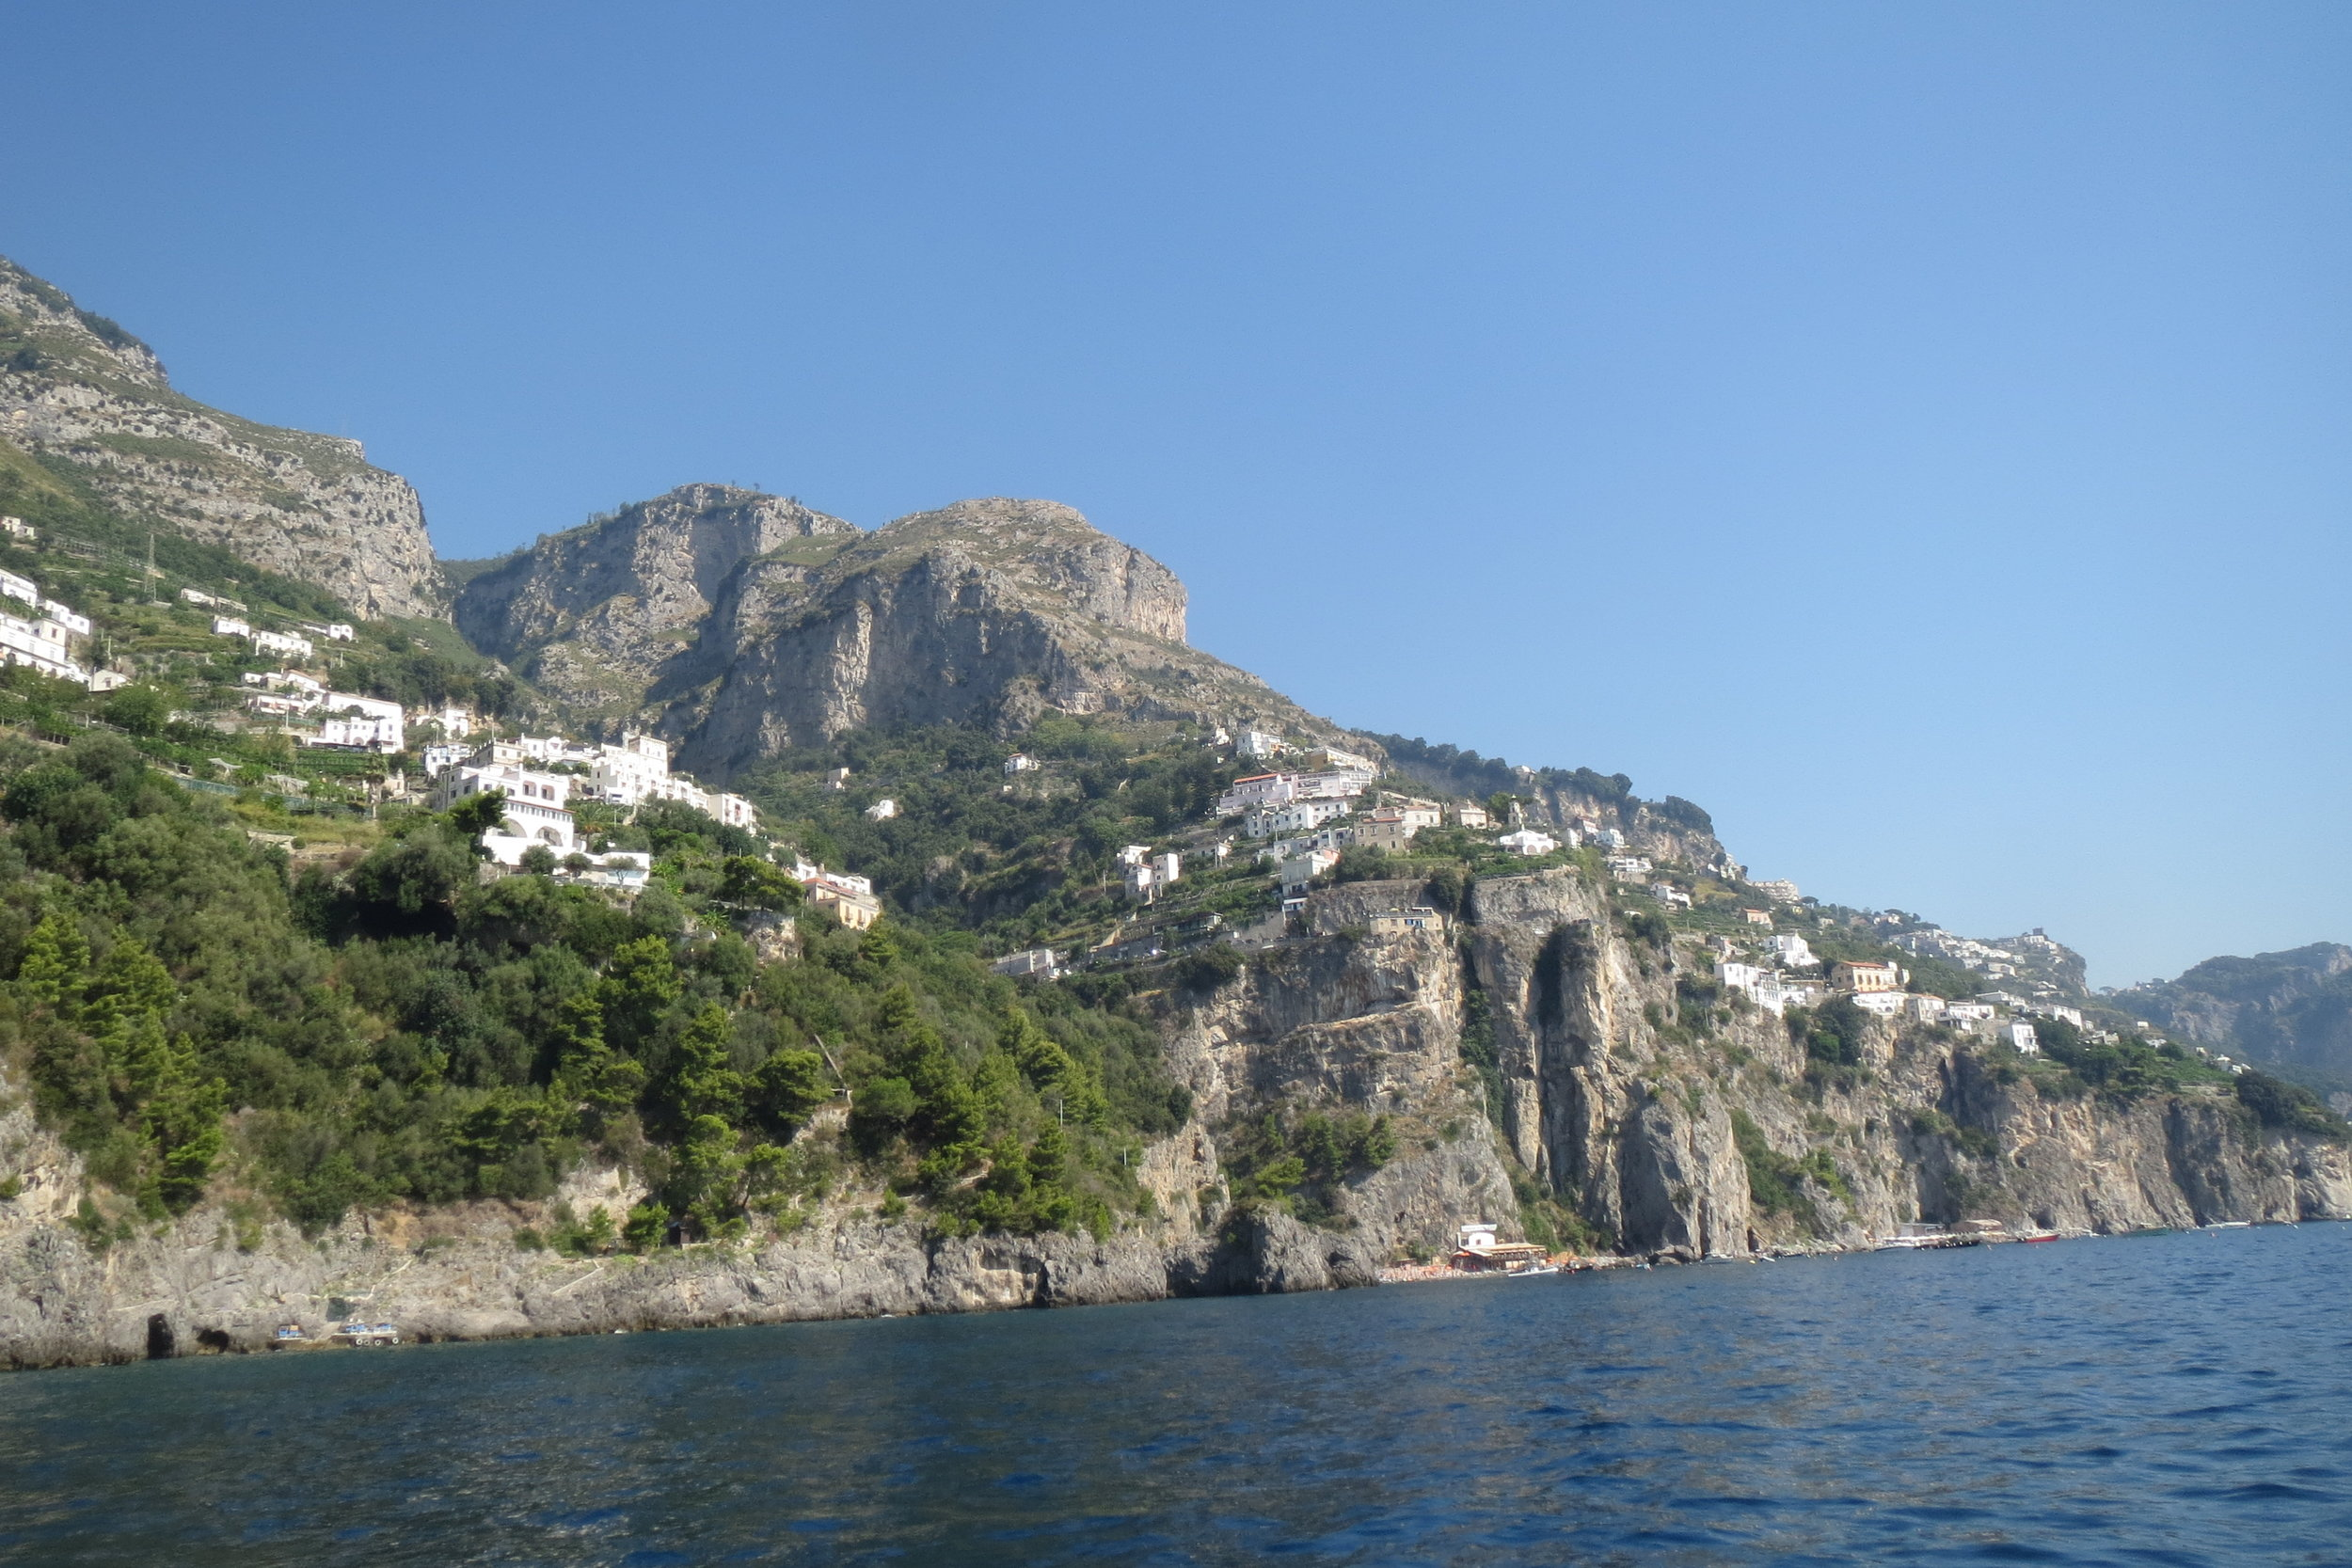 The charming features of the Amalfi coast.